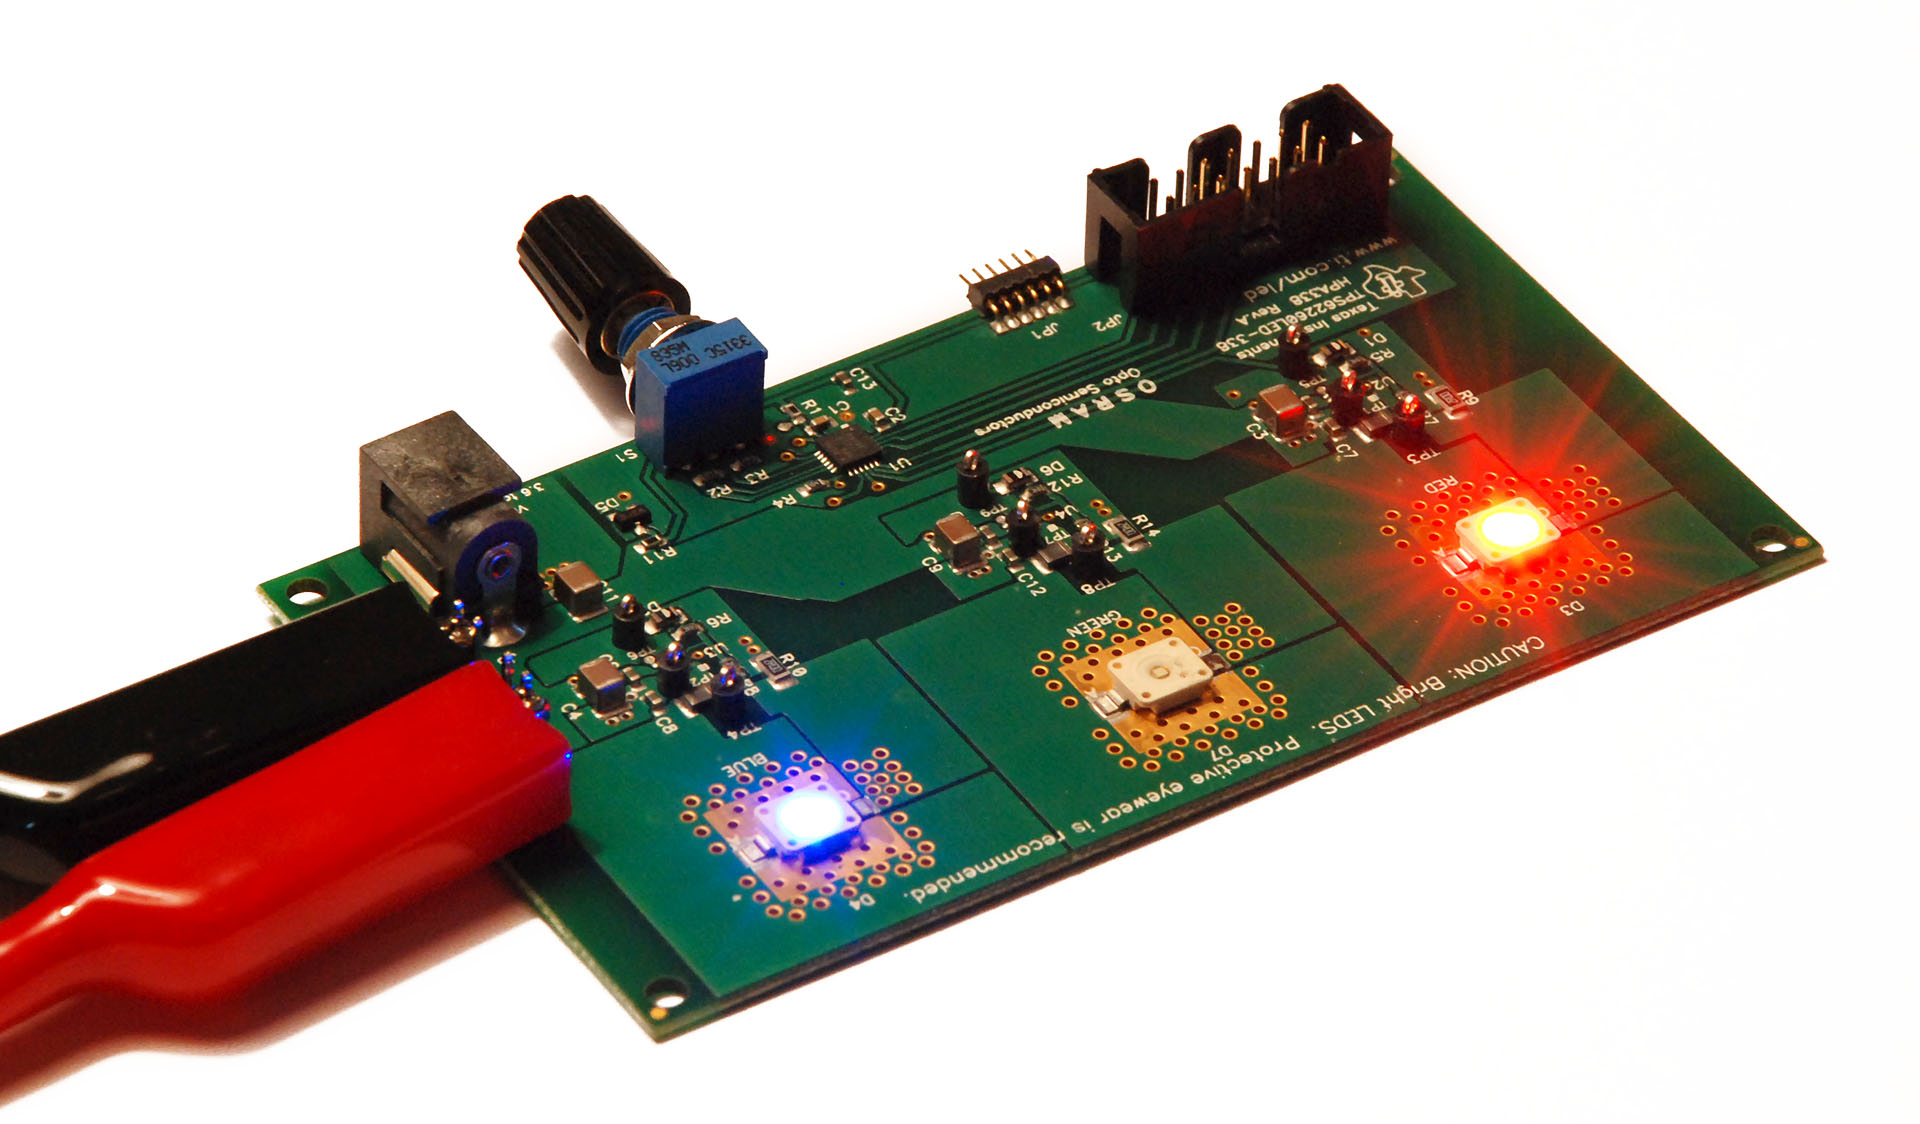 Review Tis High Power Led Driver Evaluation Board Non Lexical Buck Converter Each Is Driven By A Tps62260 Step Down Dc Low Cost Msp430f2131 Microcontroller Controls All Three Drivers Via Pulse Width